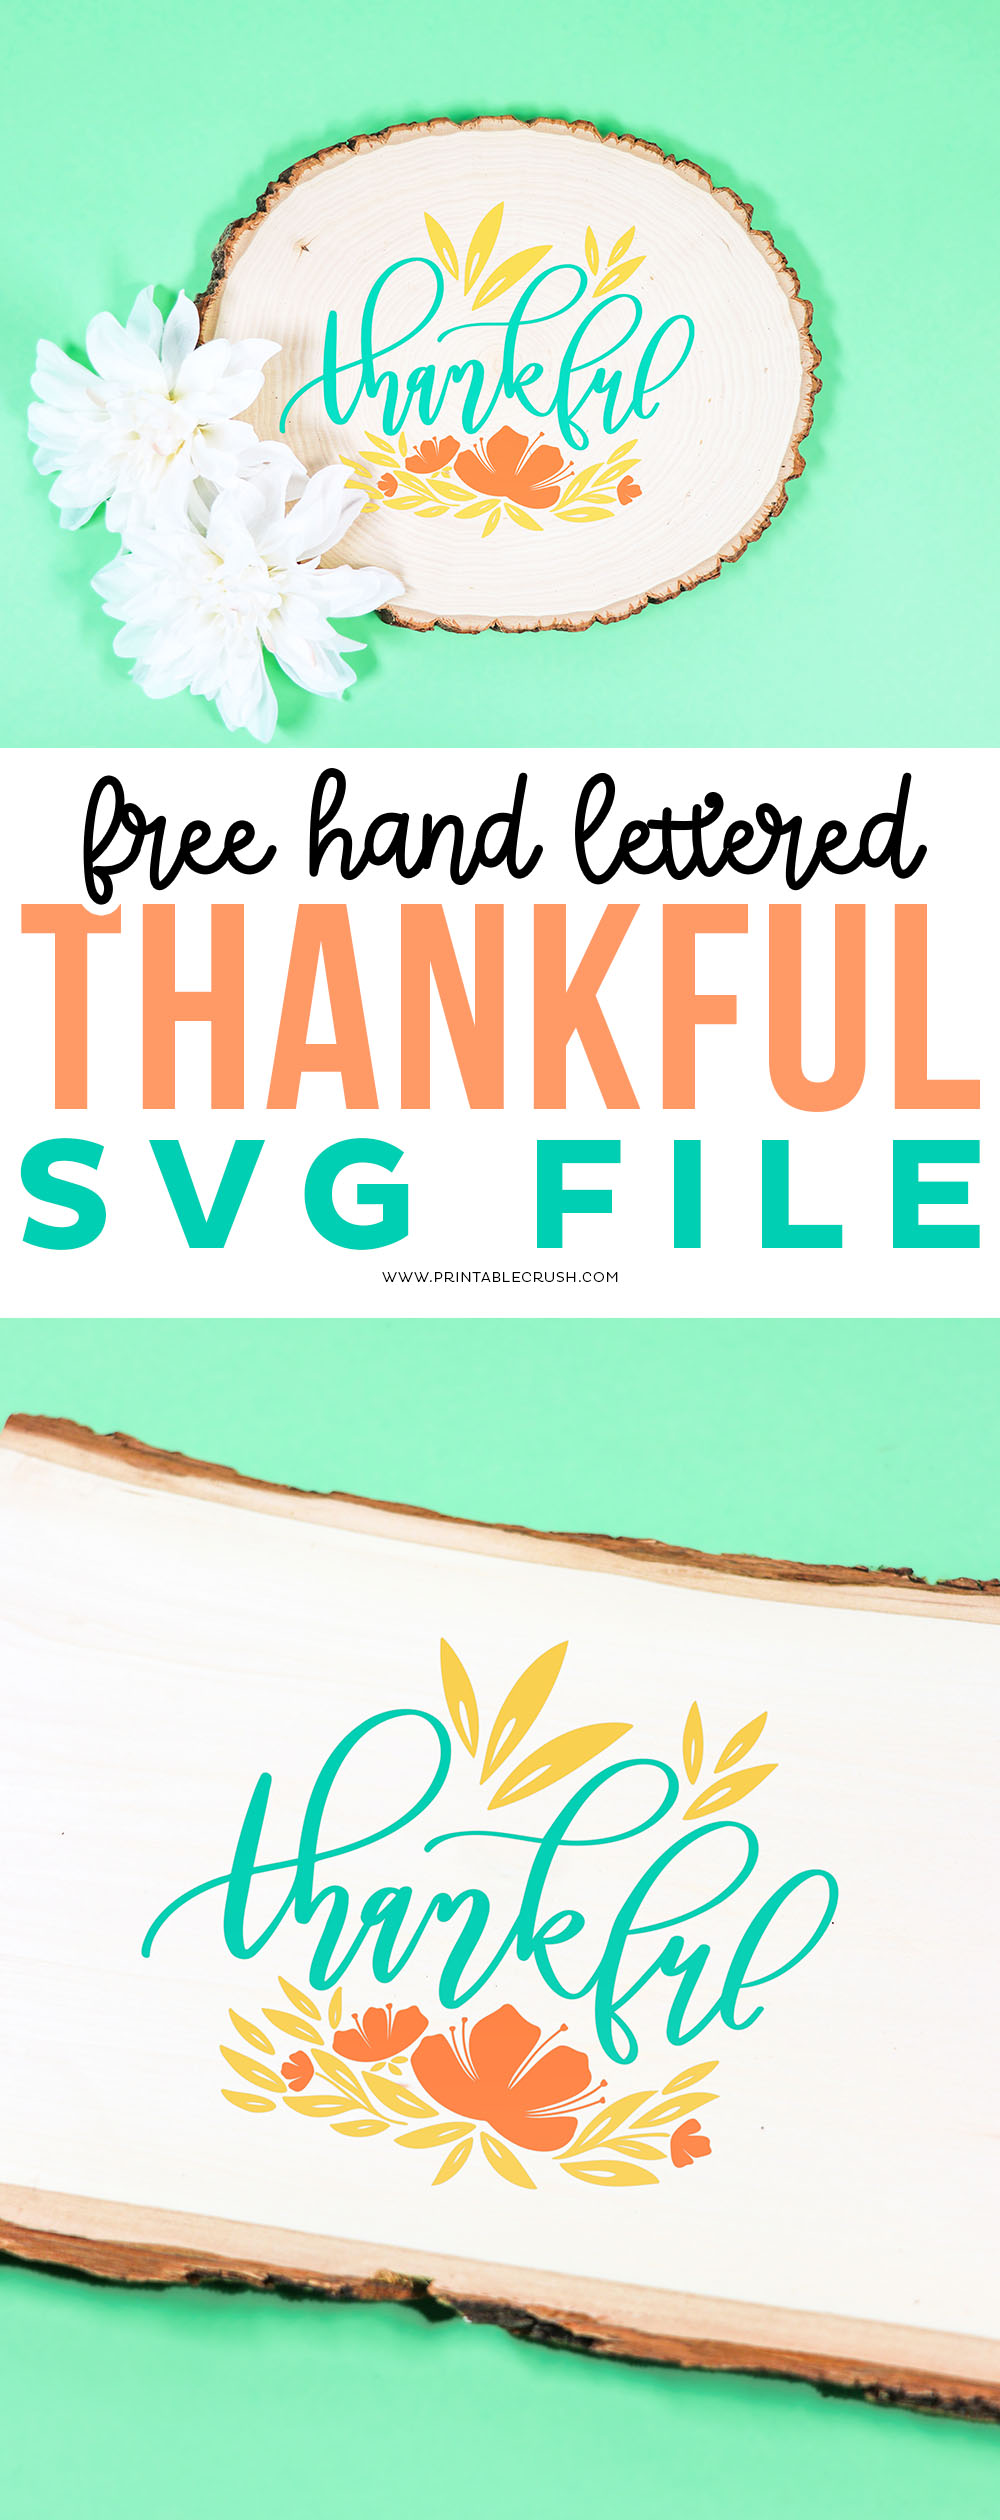 Free Thanksgiving SVG File - Thankful SVG File - Thankful Wood Sign - Printable Crush #printablecrush #freesvgfiles #svgfiles #thanksgiving #thanksgivinghomedecor #thanksgivingcrafts via @printablecrush